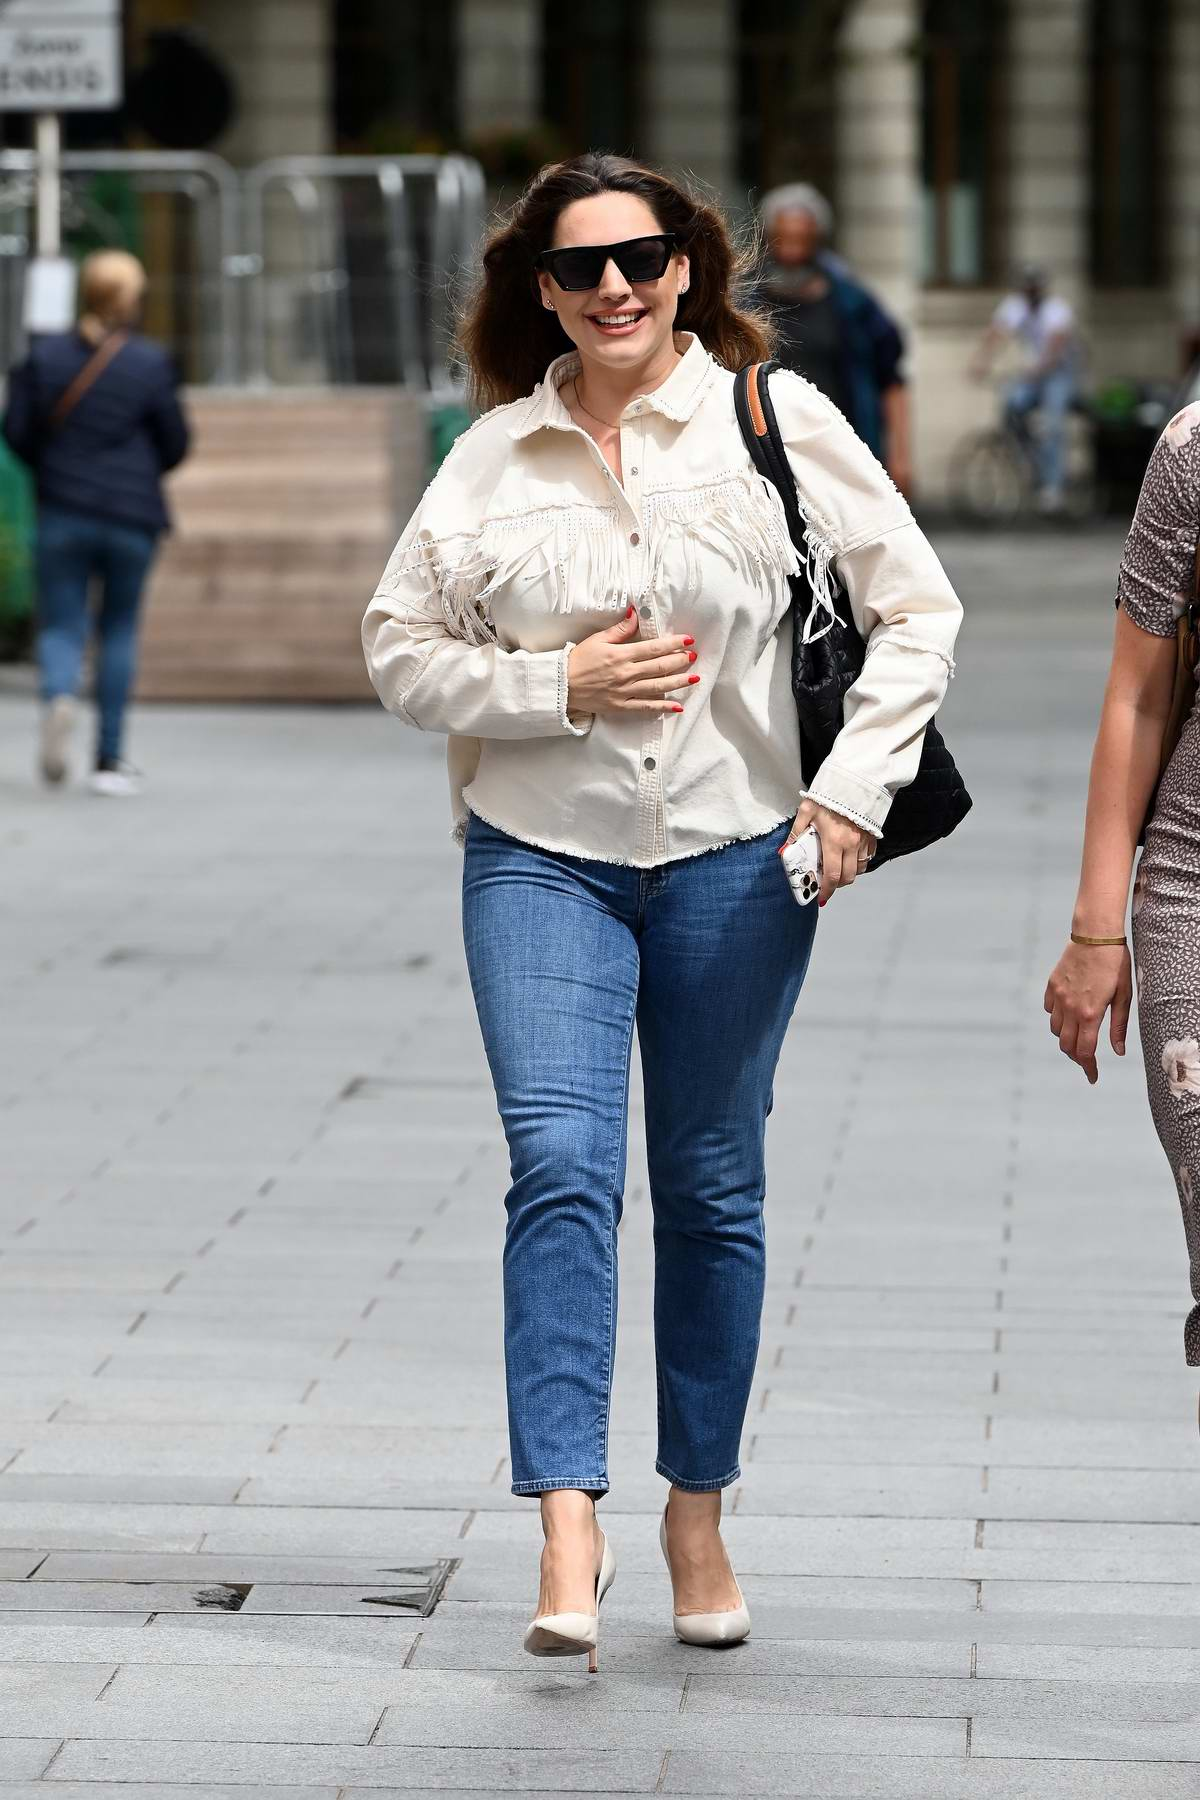 Kelly Brook is all smiles as she leaves Global Radio with a colleague in London, UK